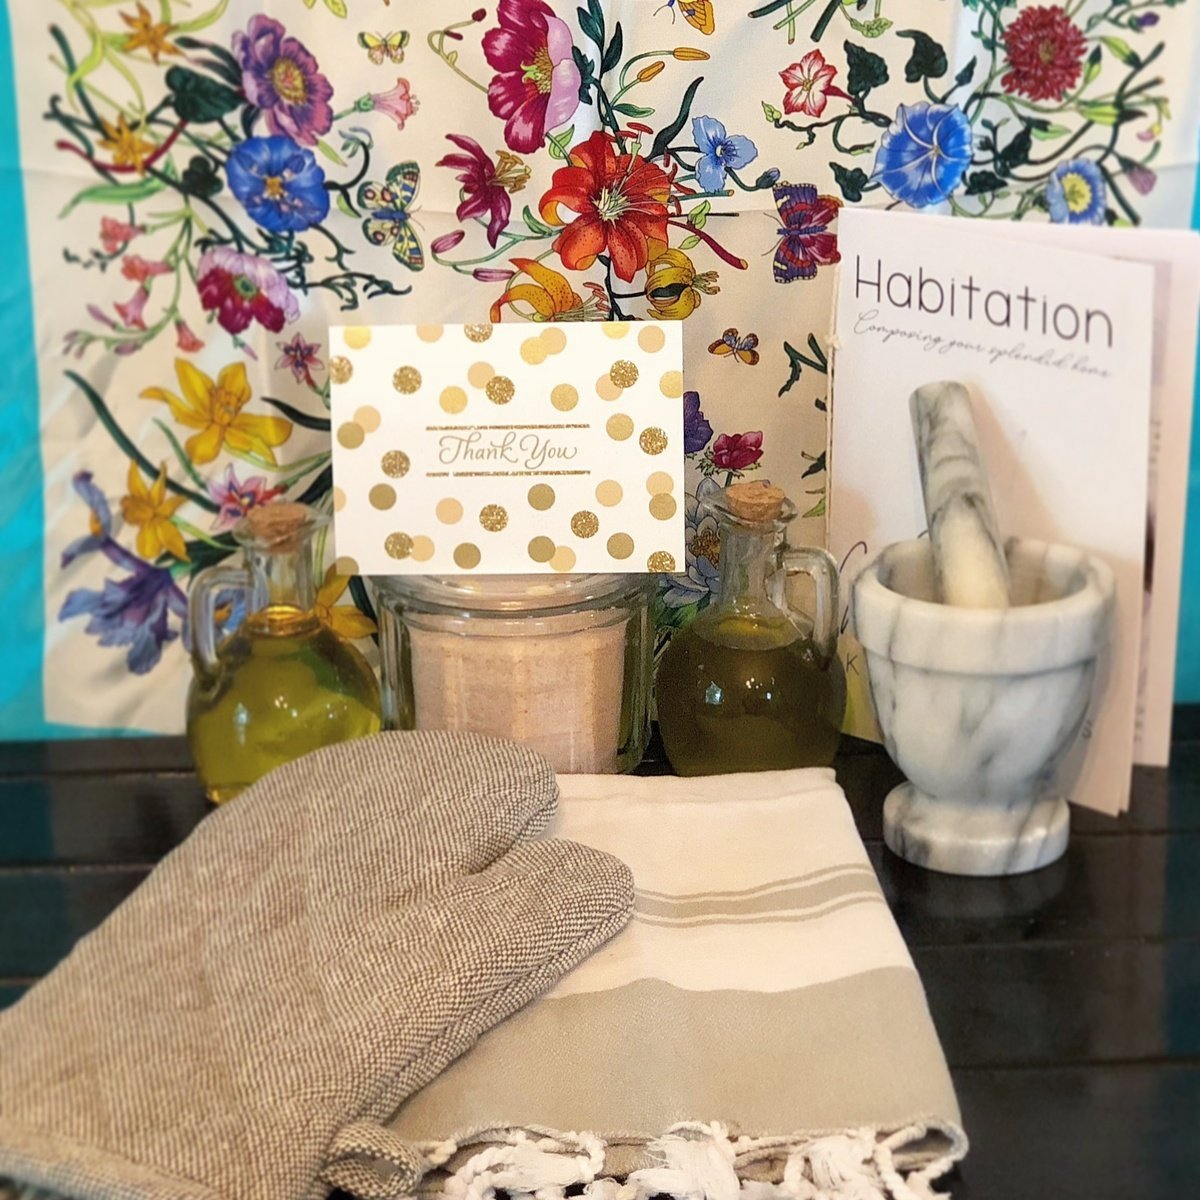 Interior design products from the Habitation Subscription Box